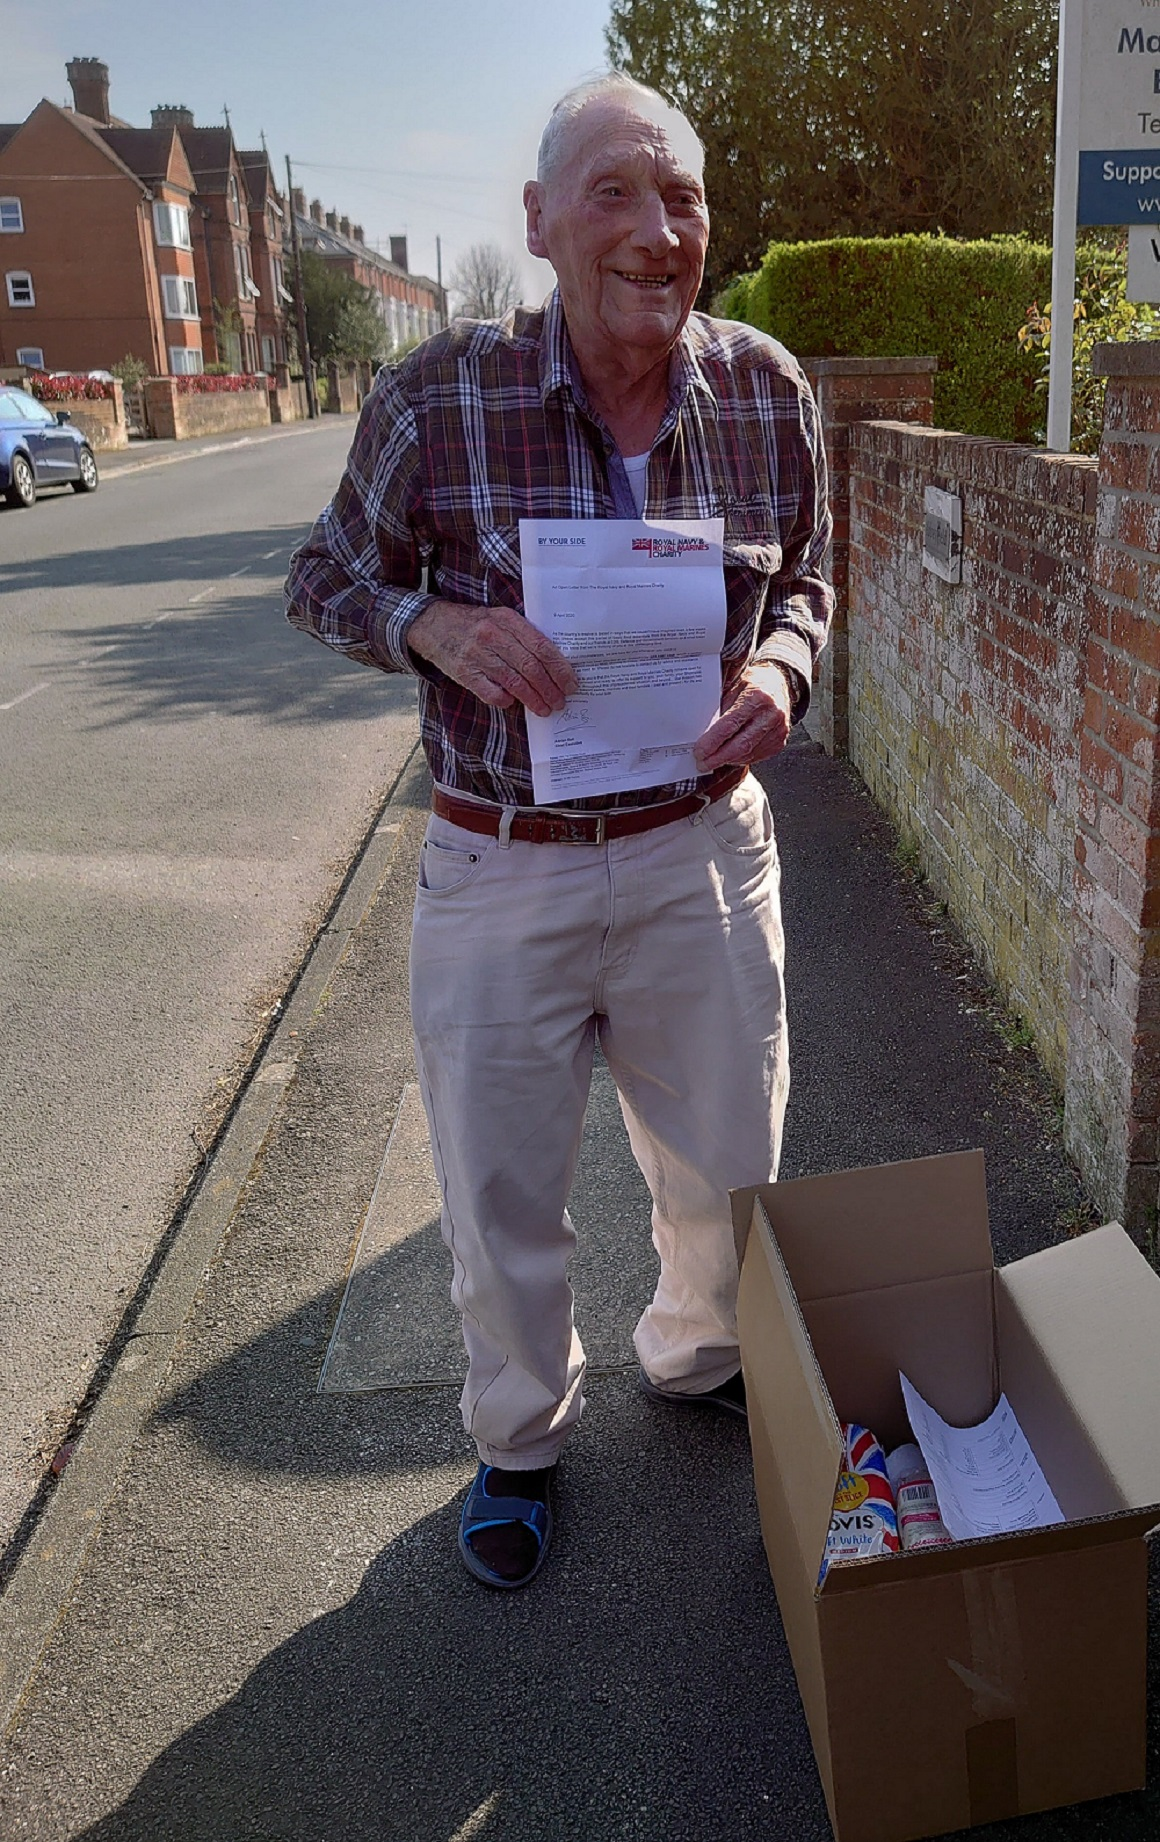 WW2 Royal Navy veteran Bill Silvester receives care package from RNRMC